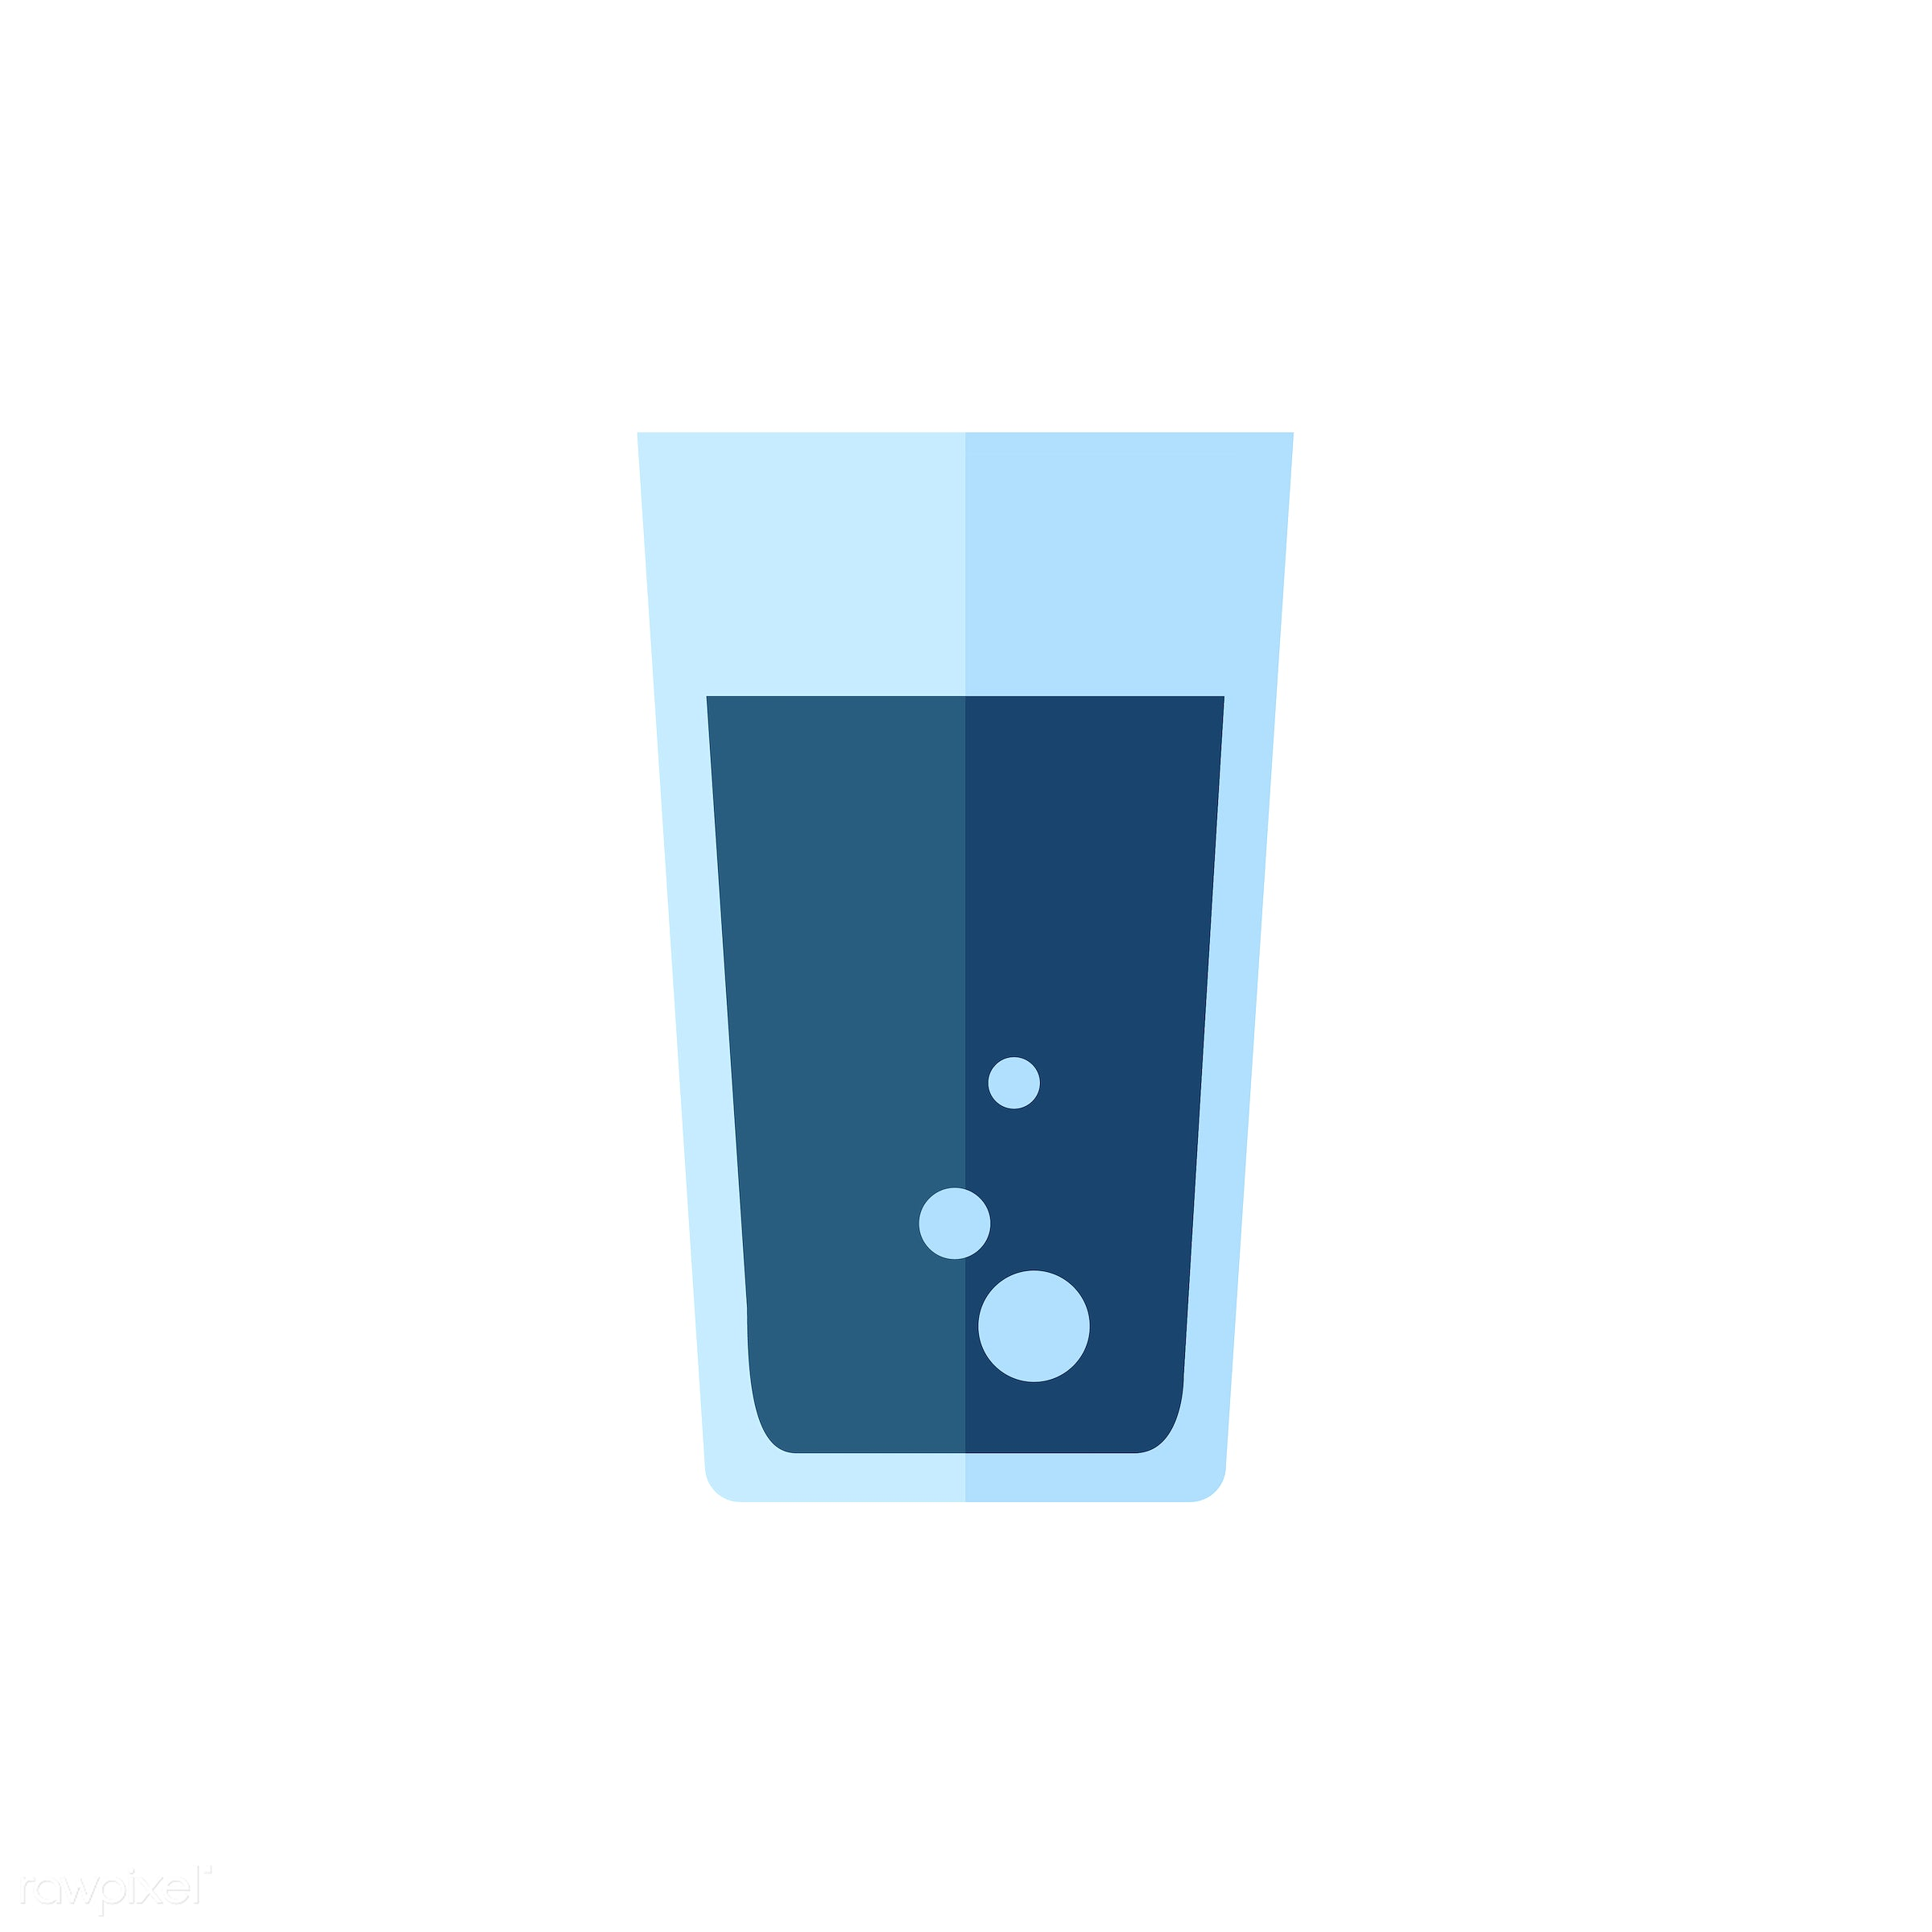 vector, graphic, illustration, icon, symbol, colorful, cute, drink, beverage, water, blue, soda, glass